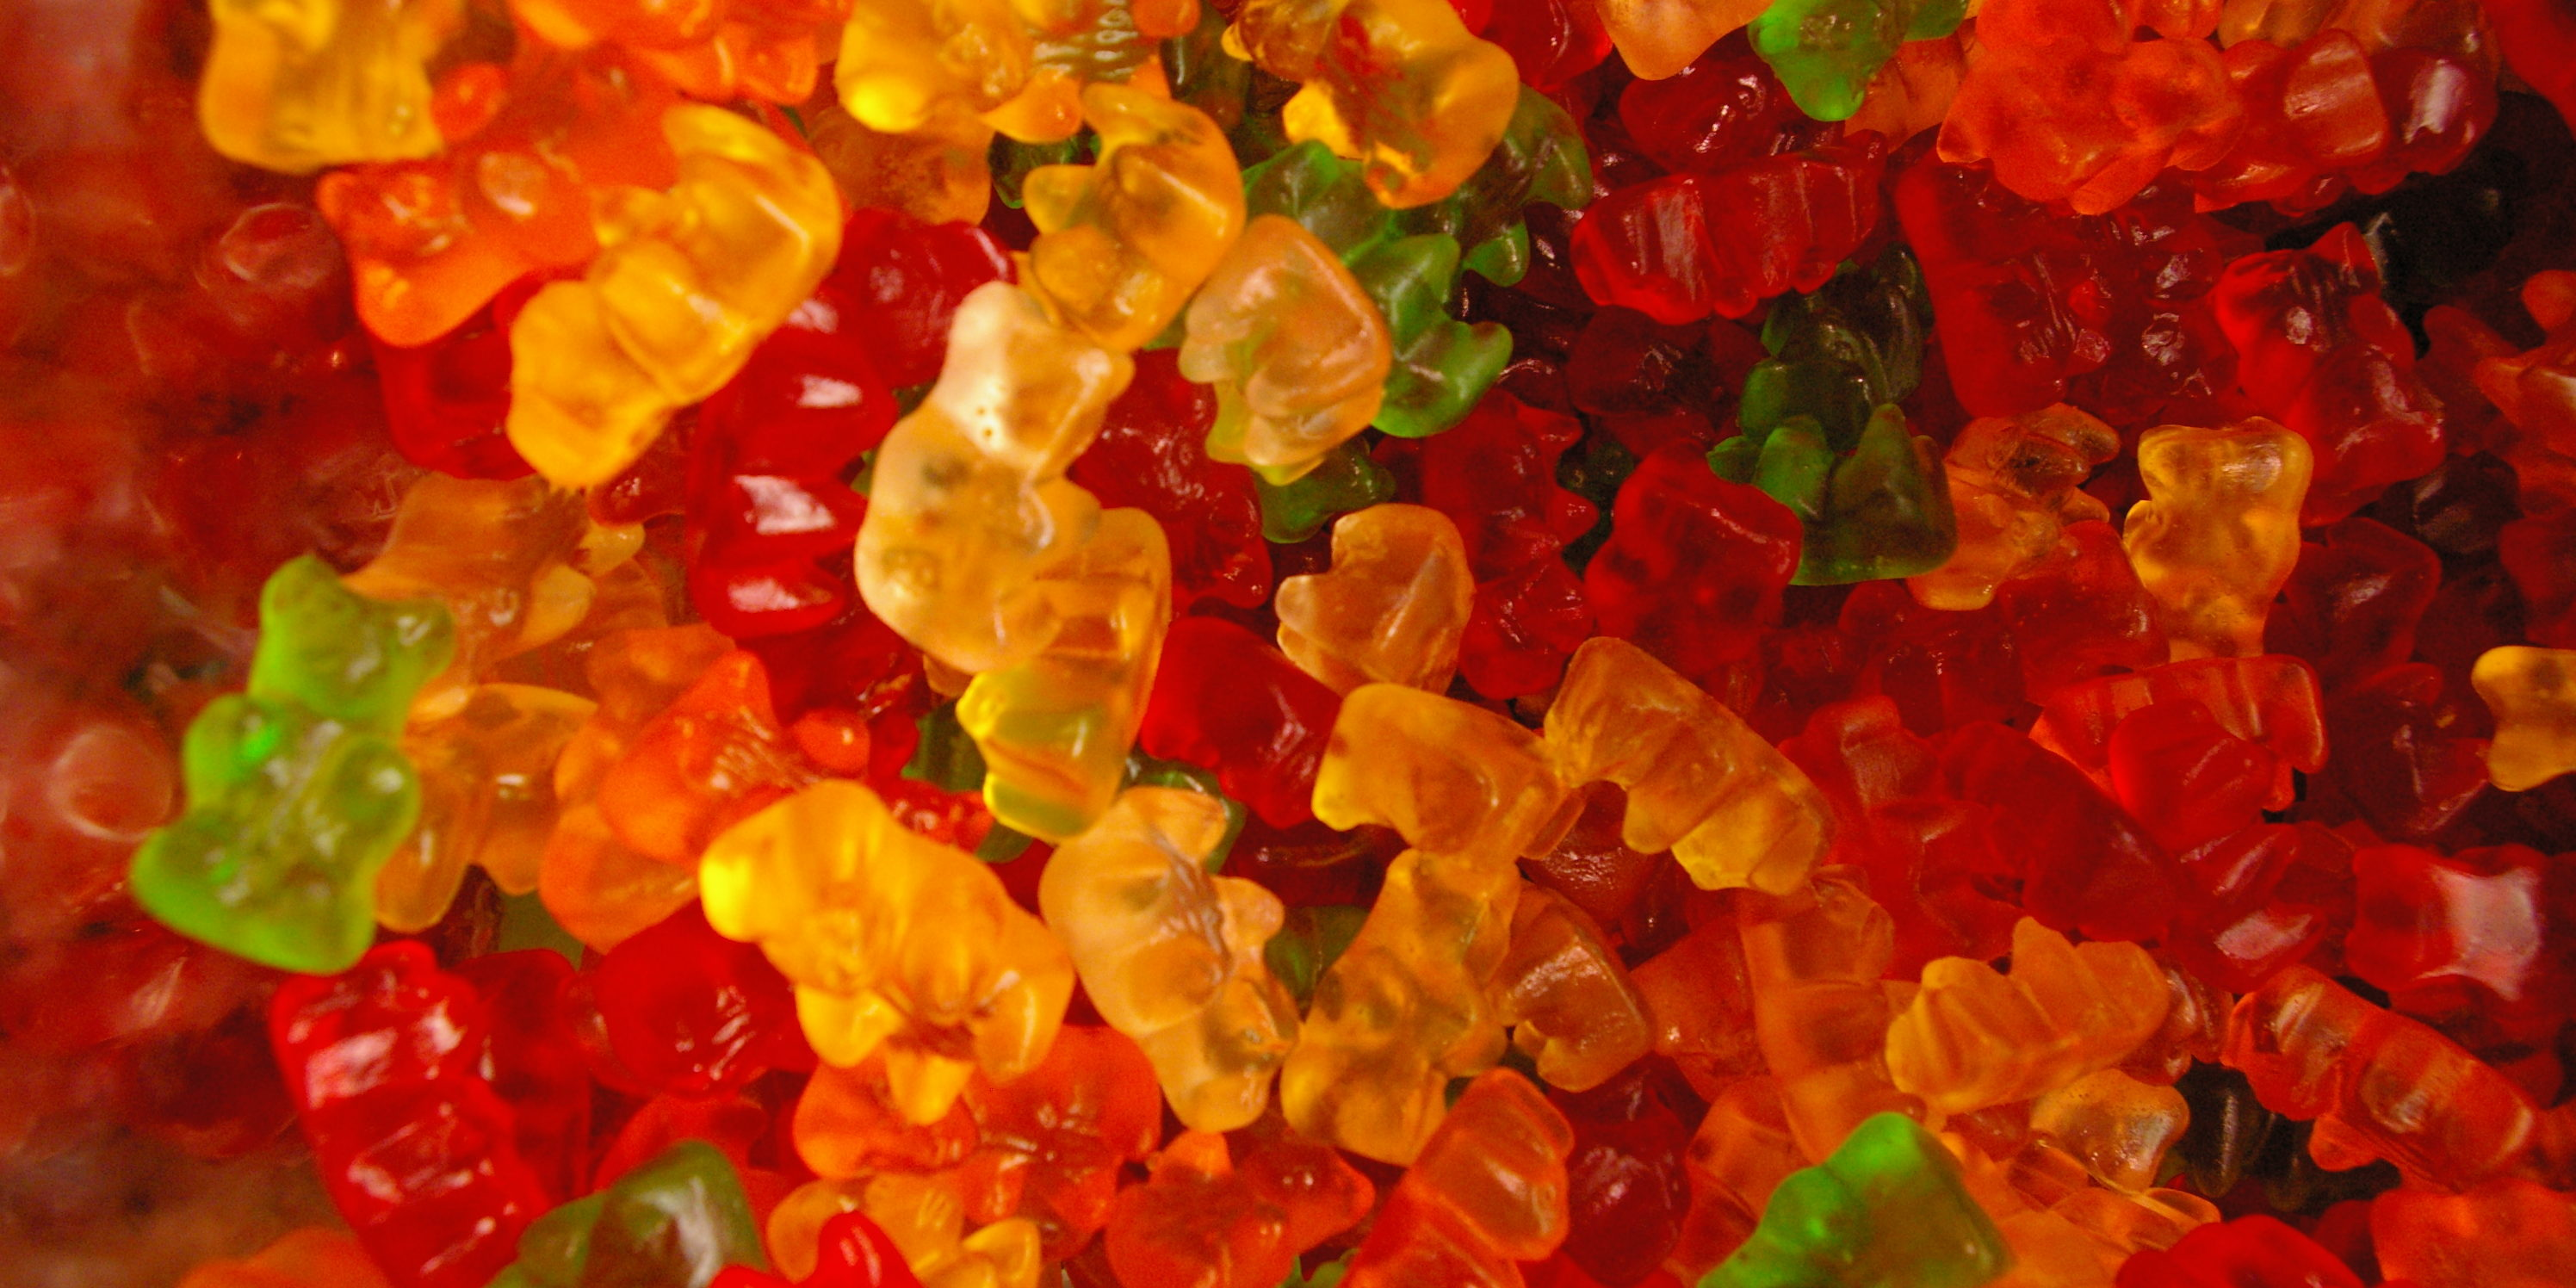 How to make your own delicious weed gummies